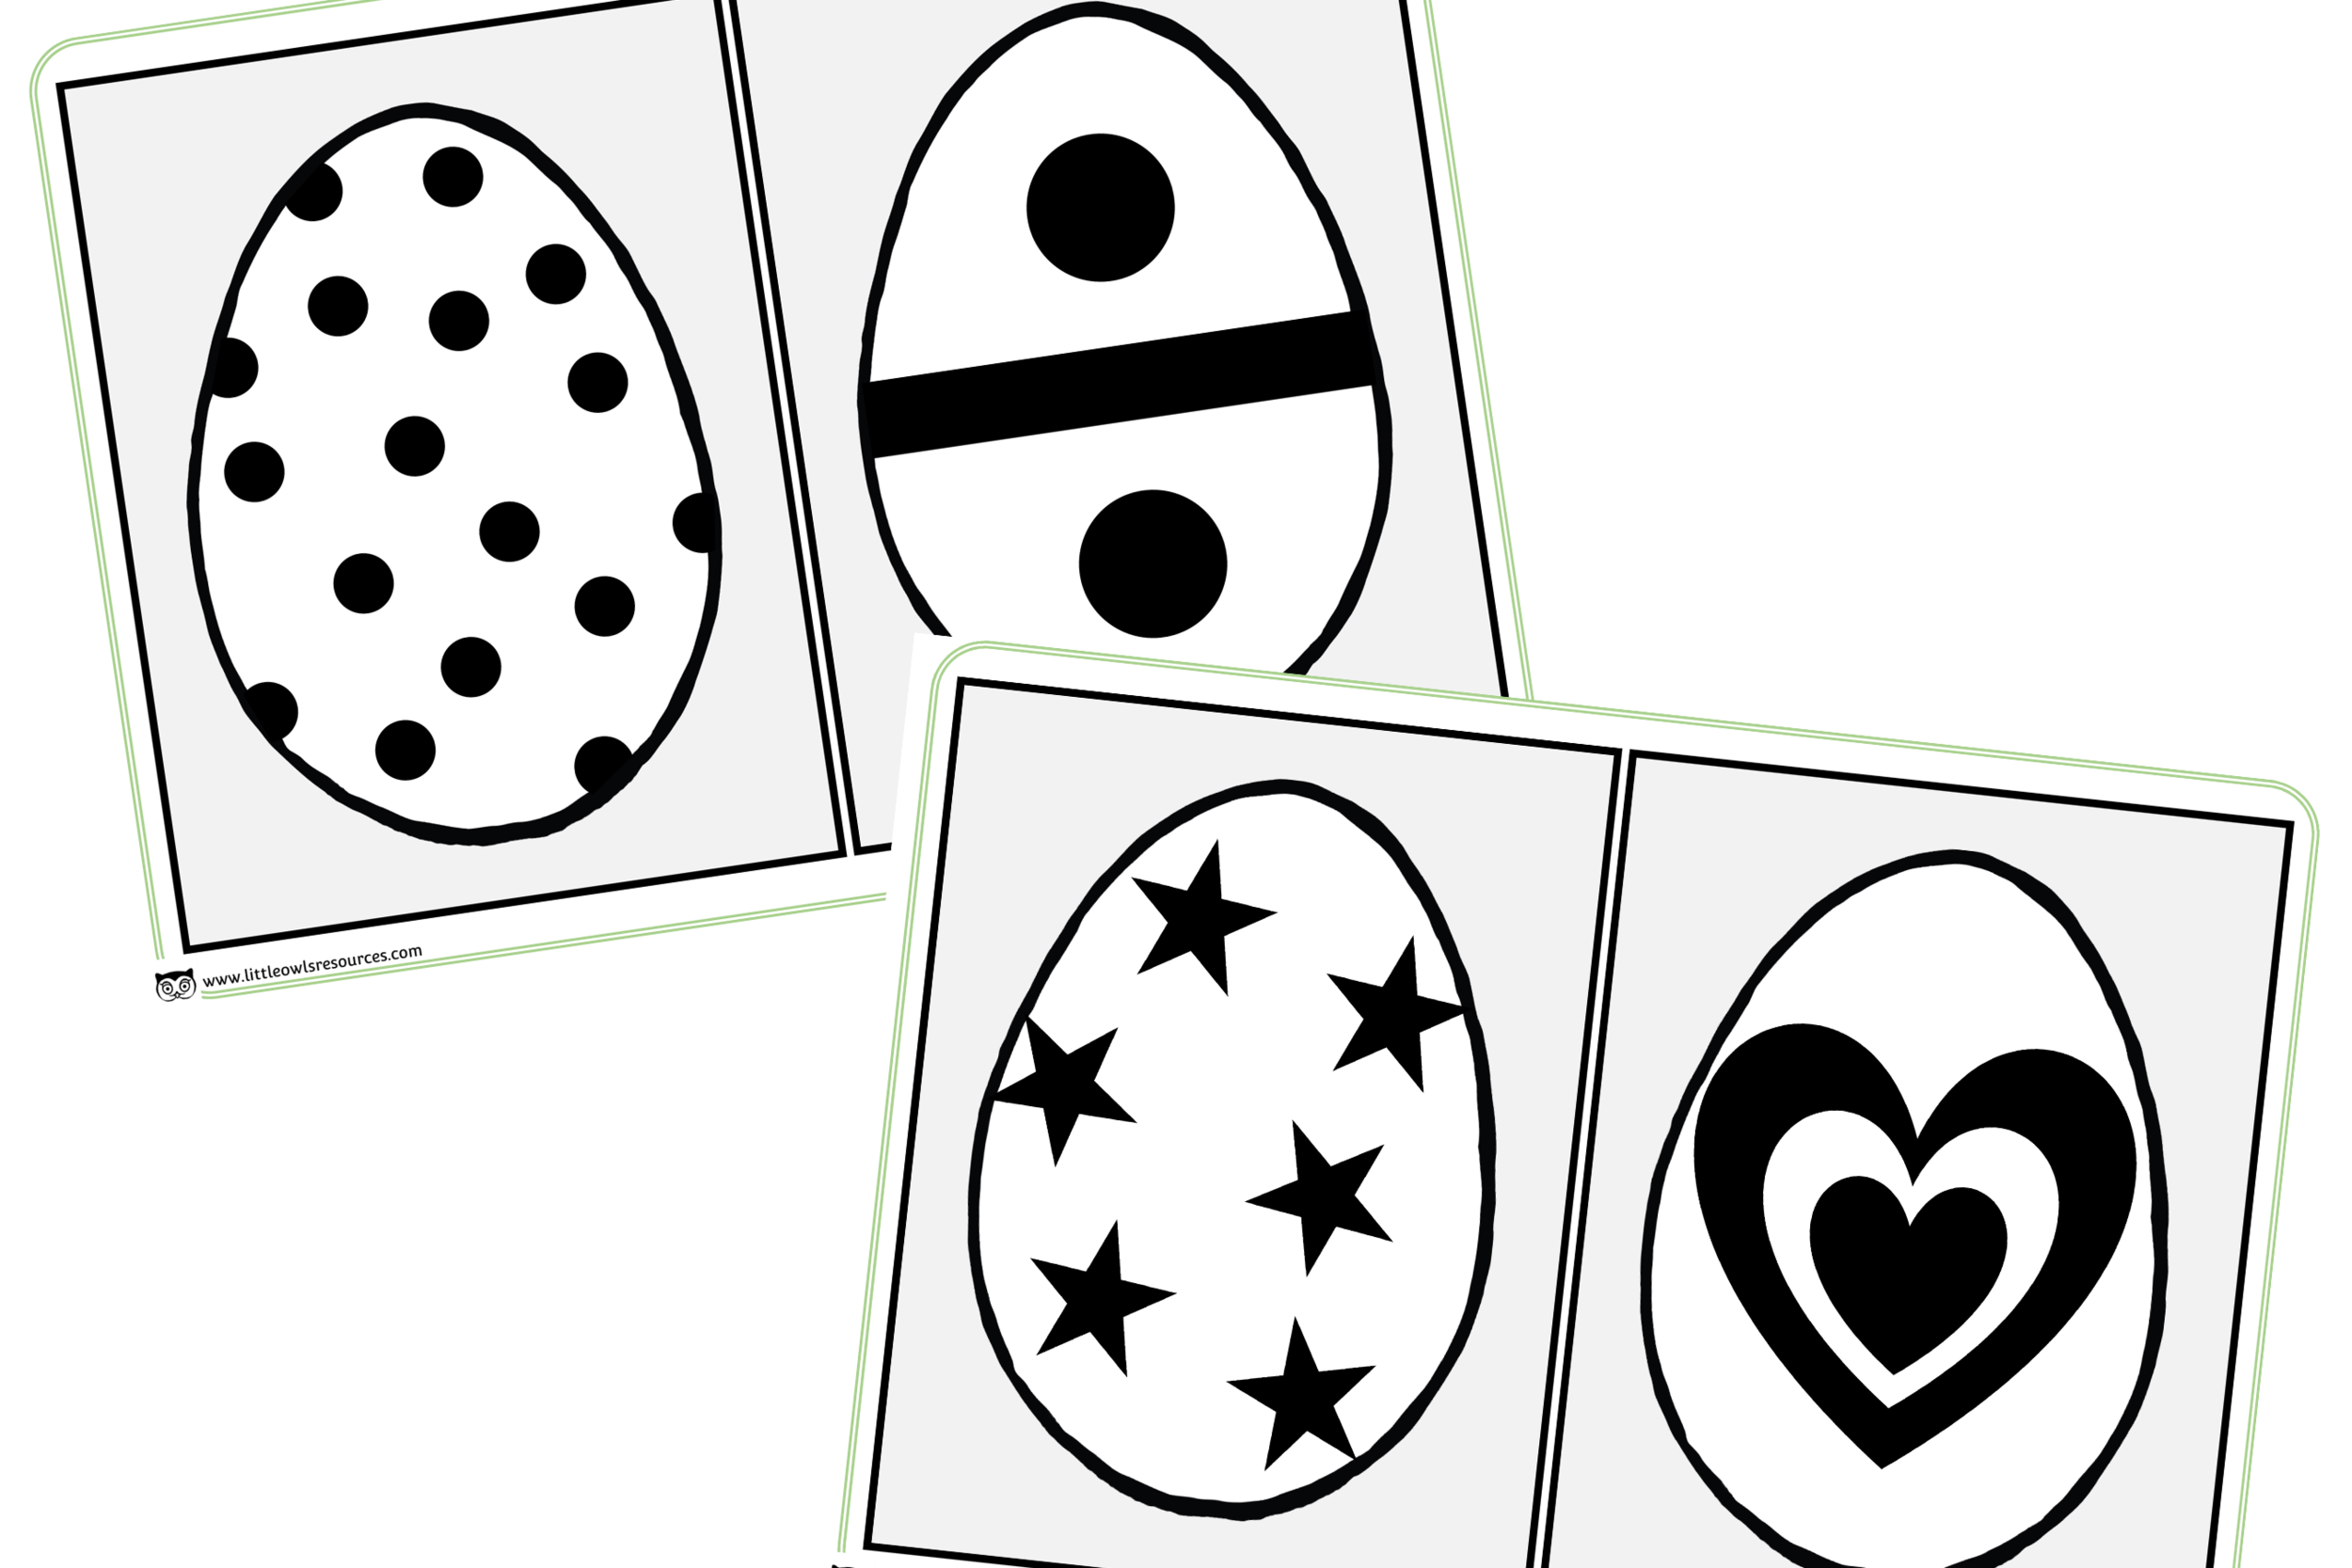 High Contrast Black and White Egg Shape/Pattern Images